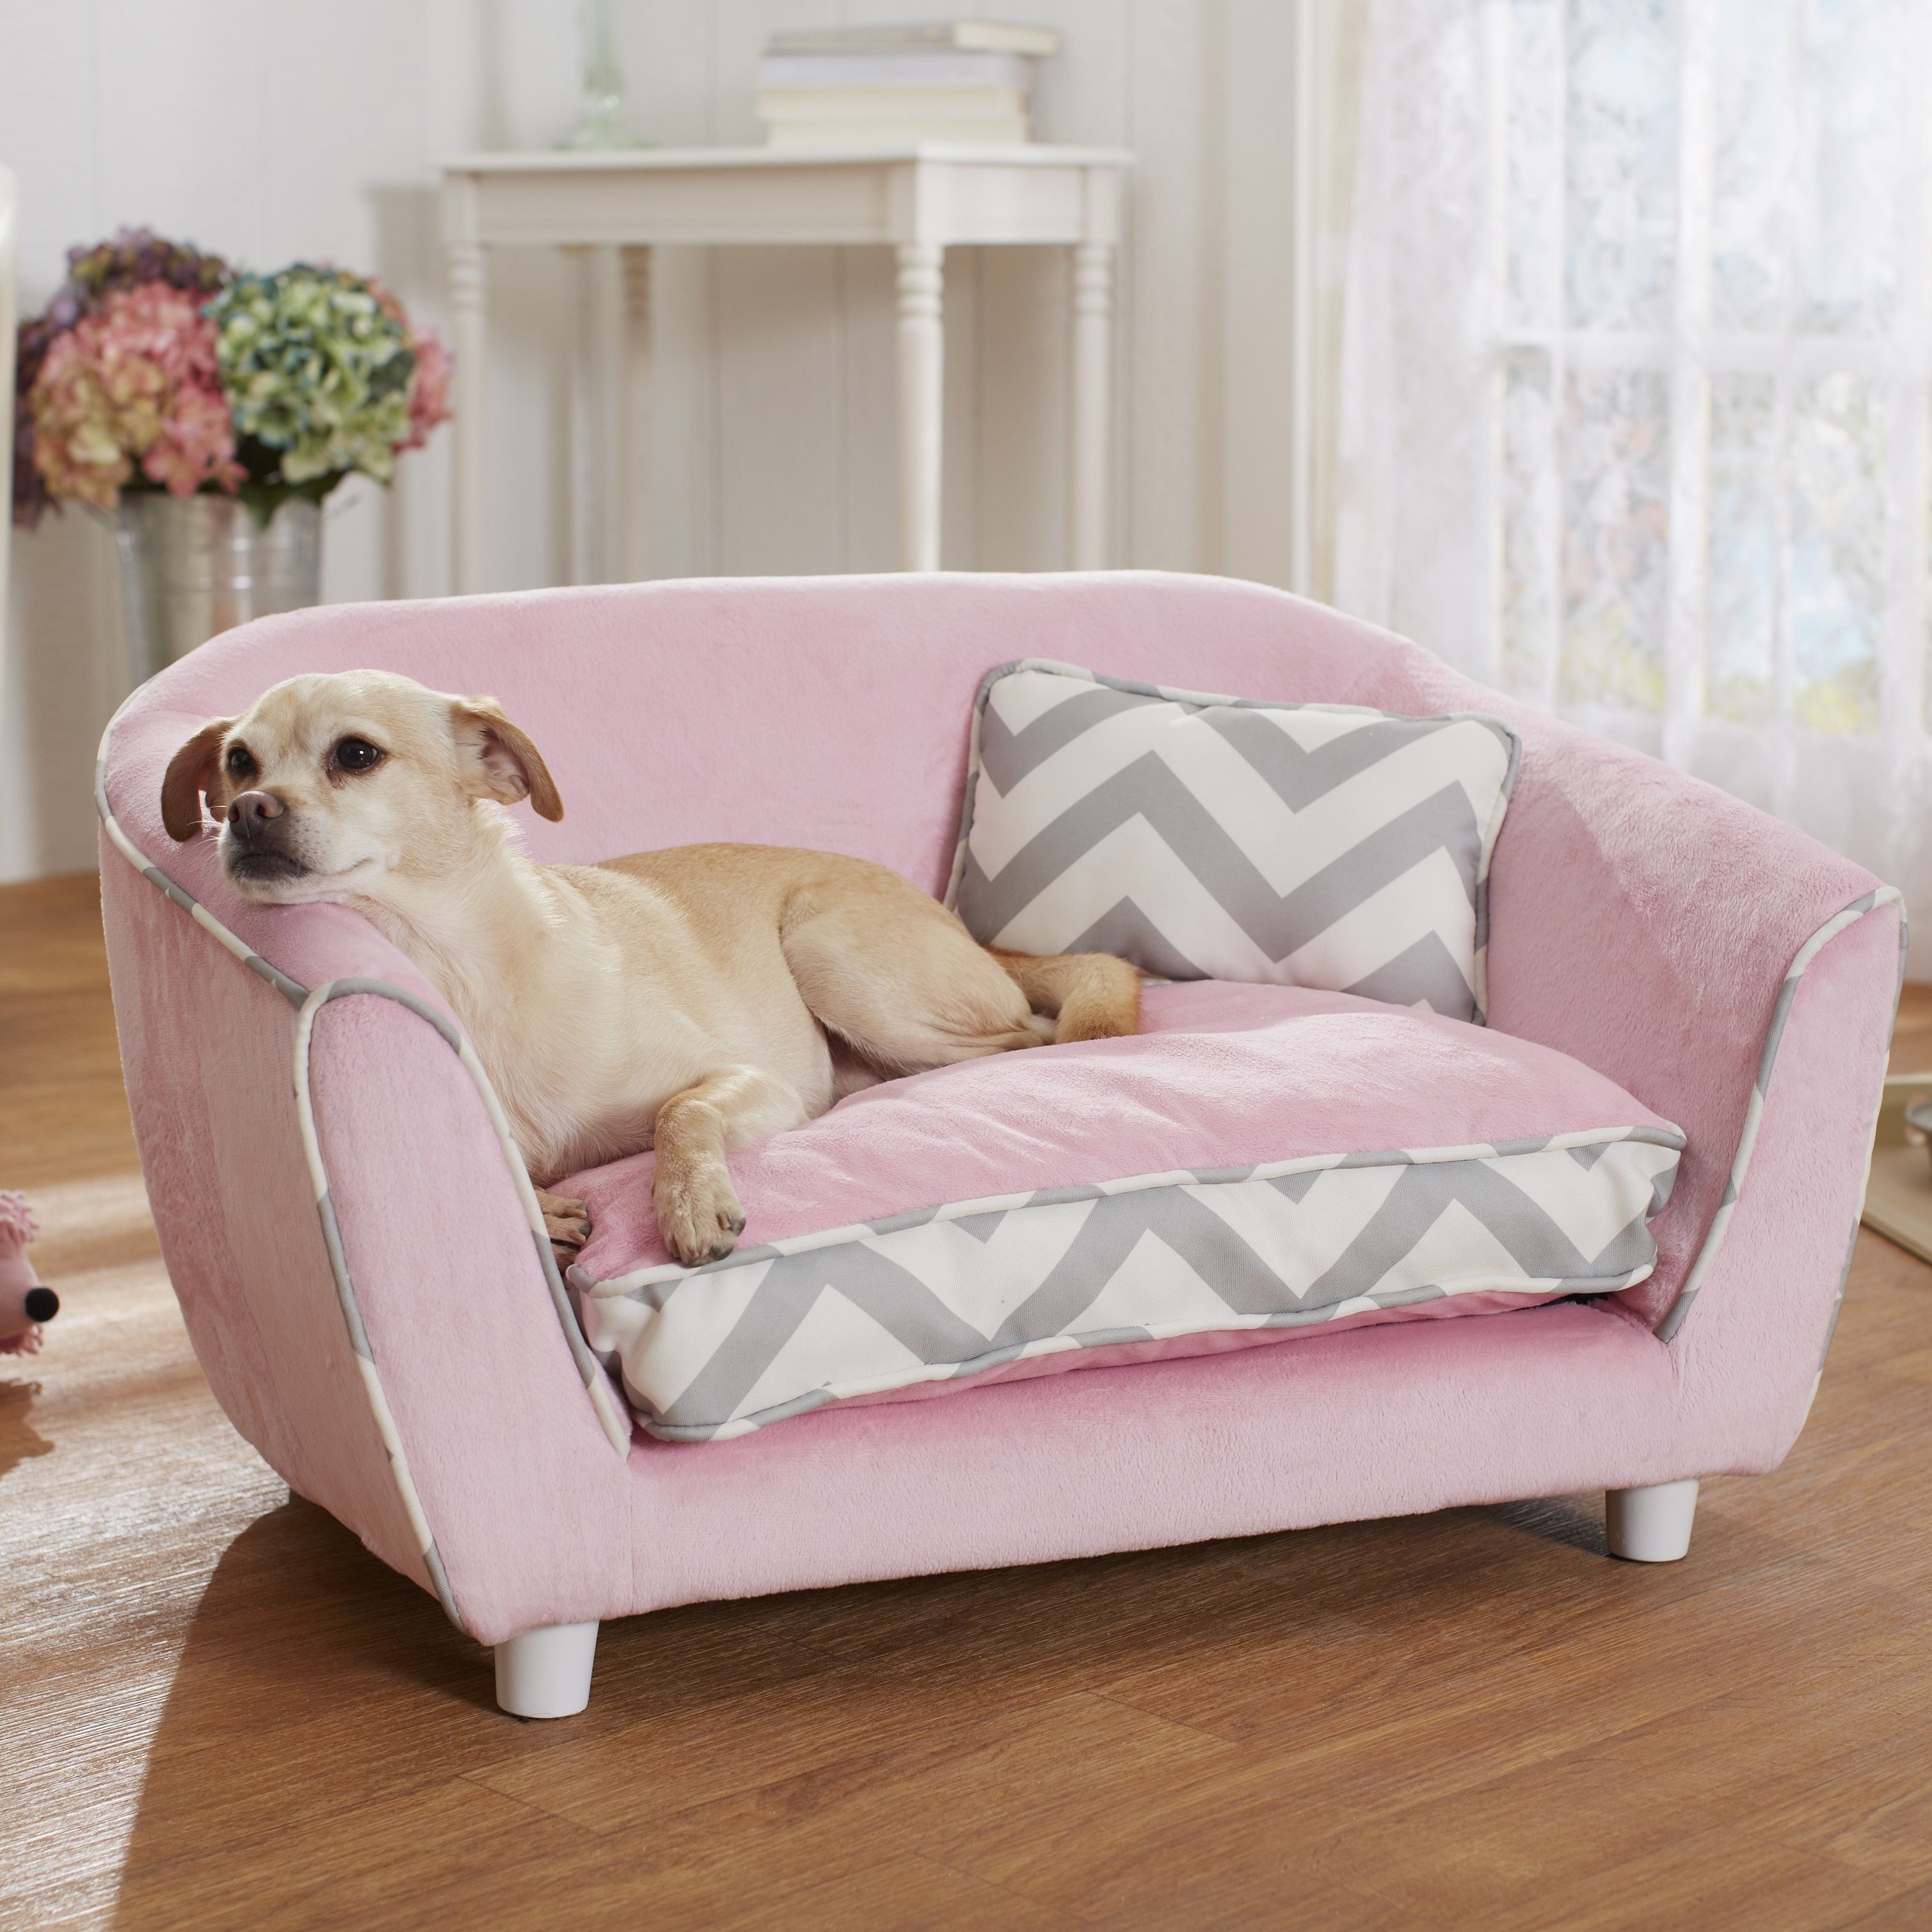 Online Shopping Bedding Furniture Electronics Jewelry Clothing More Dog Couch Bed Pet Bed Furniture Dog Couch